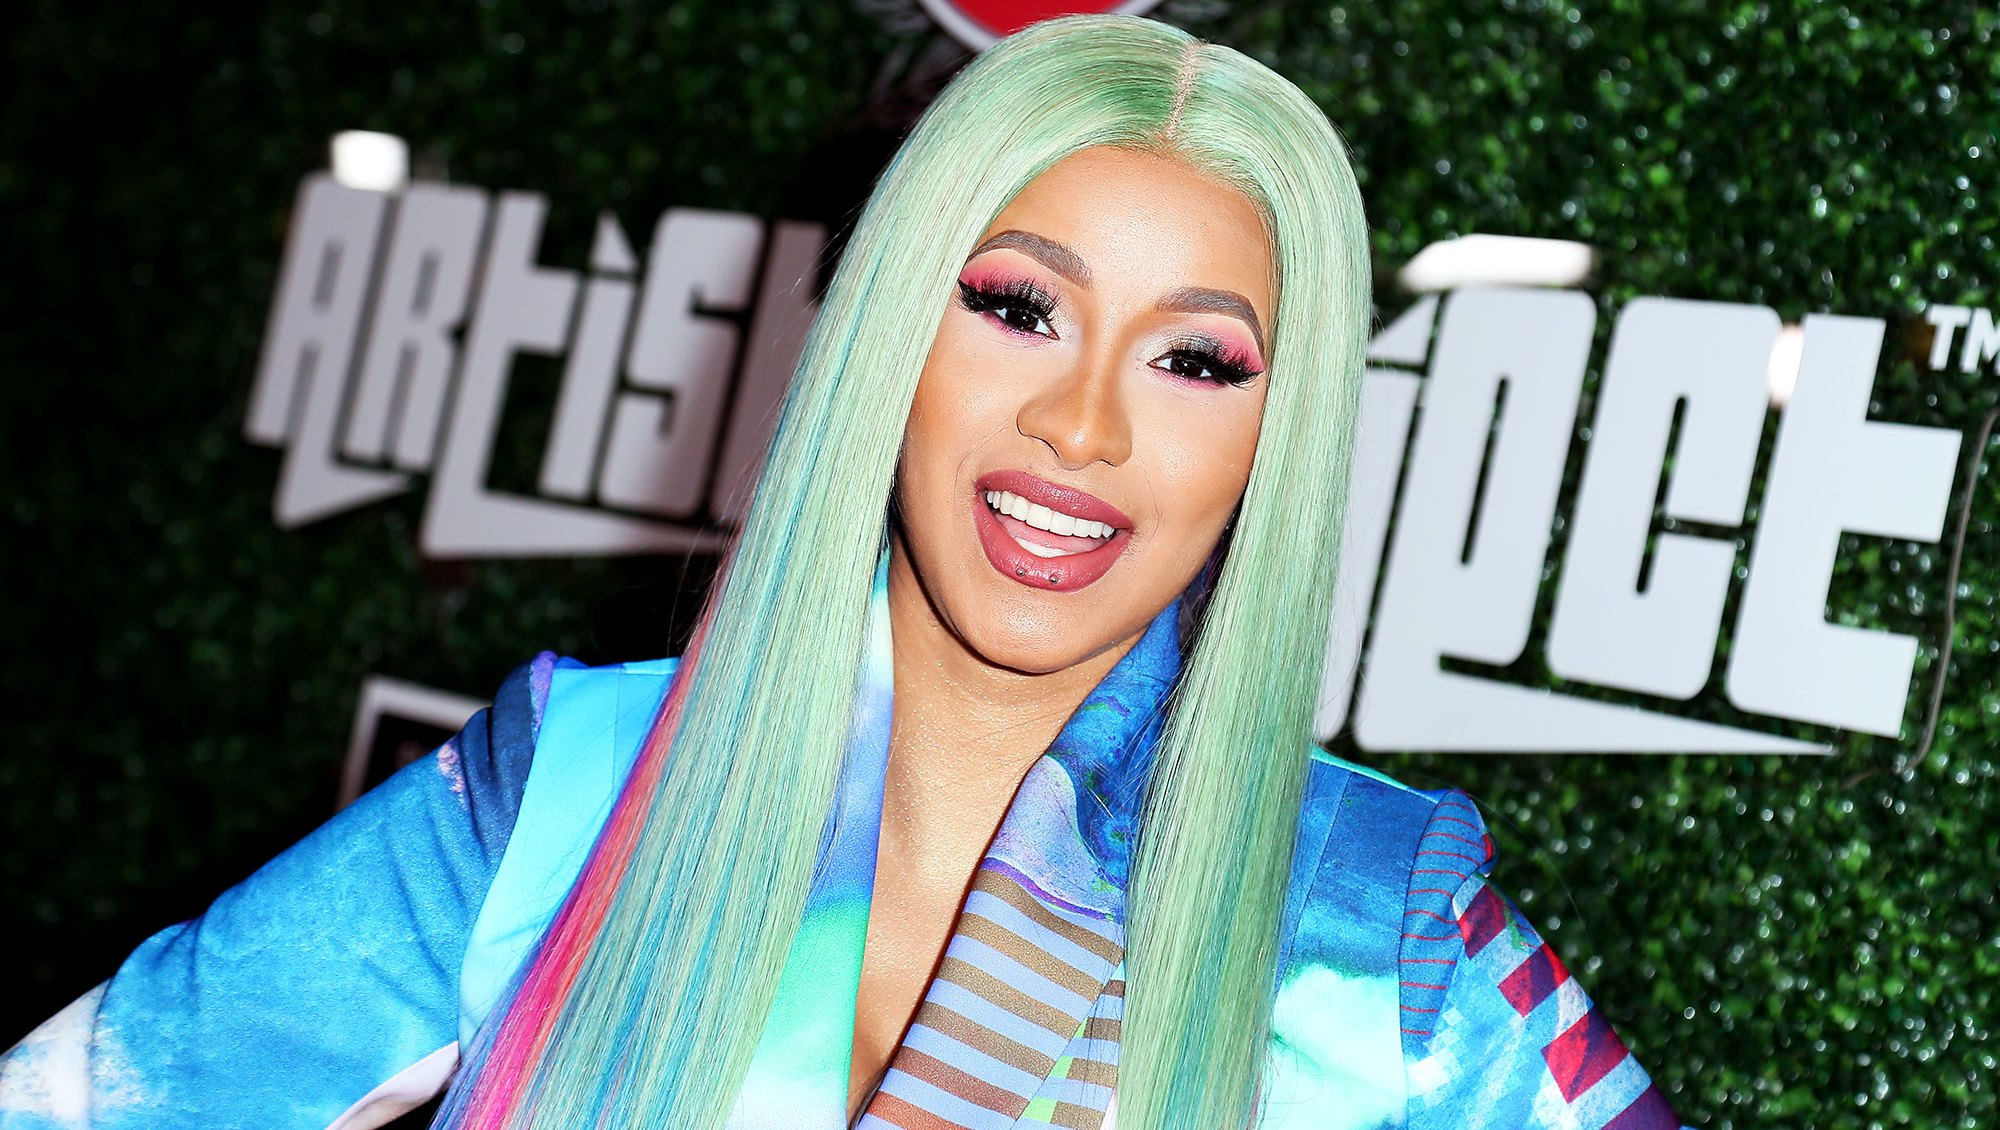 Cardi B coachella 2019 Swisher Sweets Awards rainbow hair wig